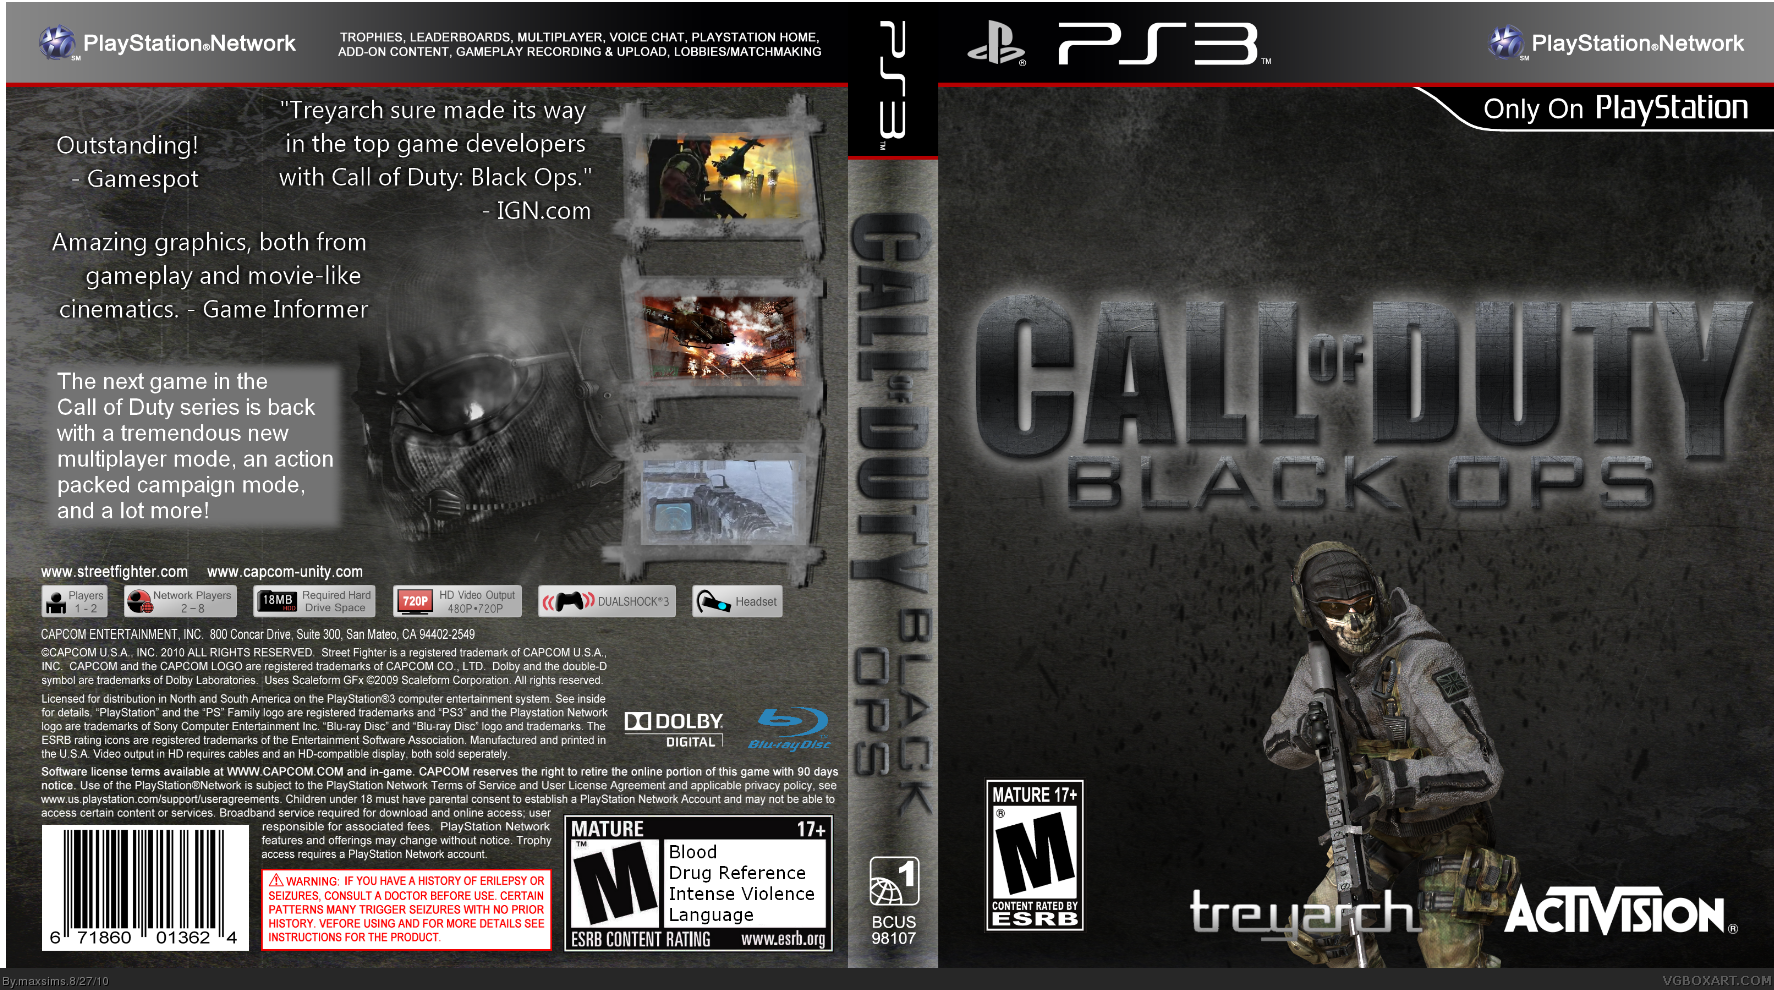 Call Of Duty 4 Hacking On Playstation Network